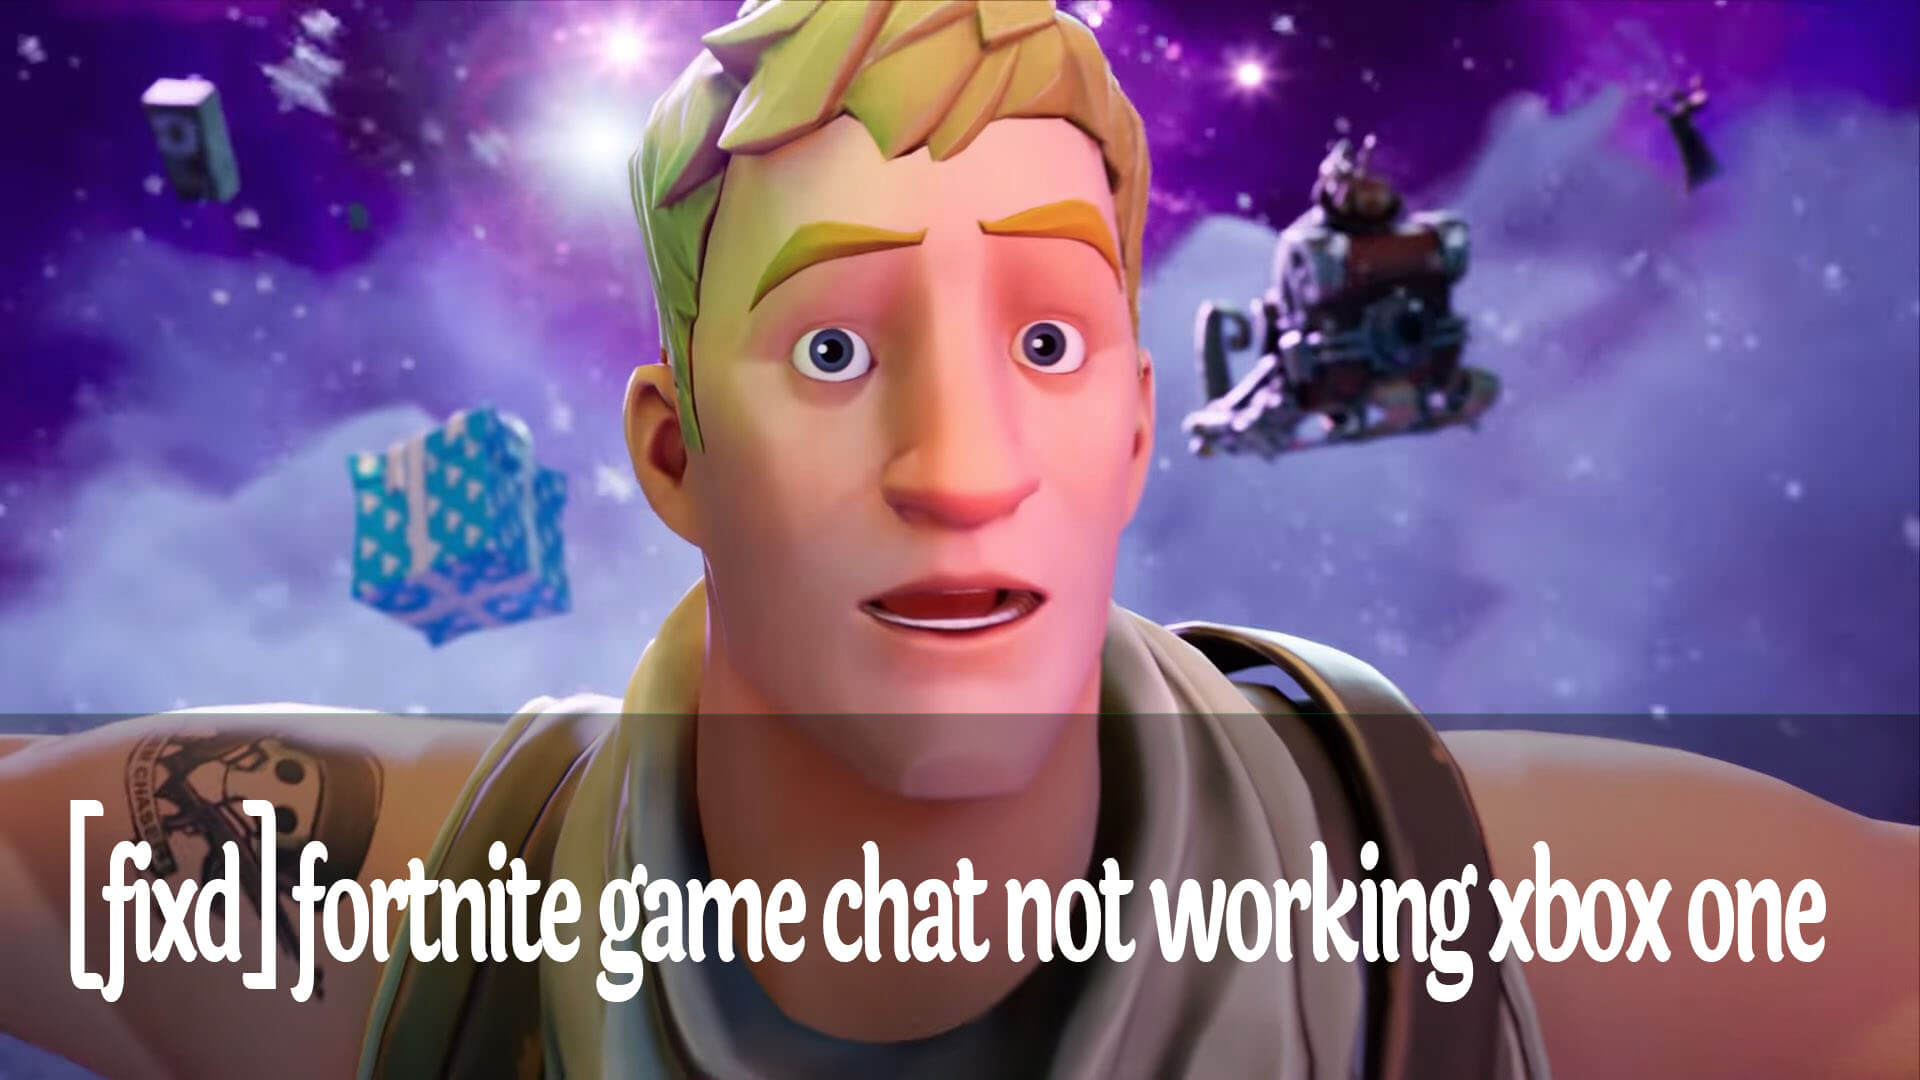 Fortnite Mobile Chat Disabled Fortnite Game Chat Not Working Xbox One 2021 Action Game Usa